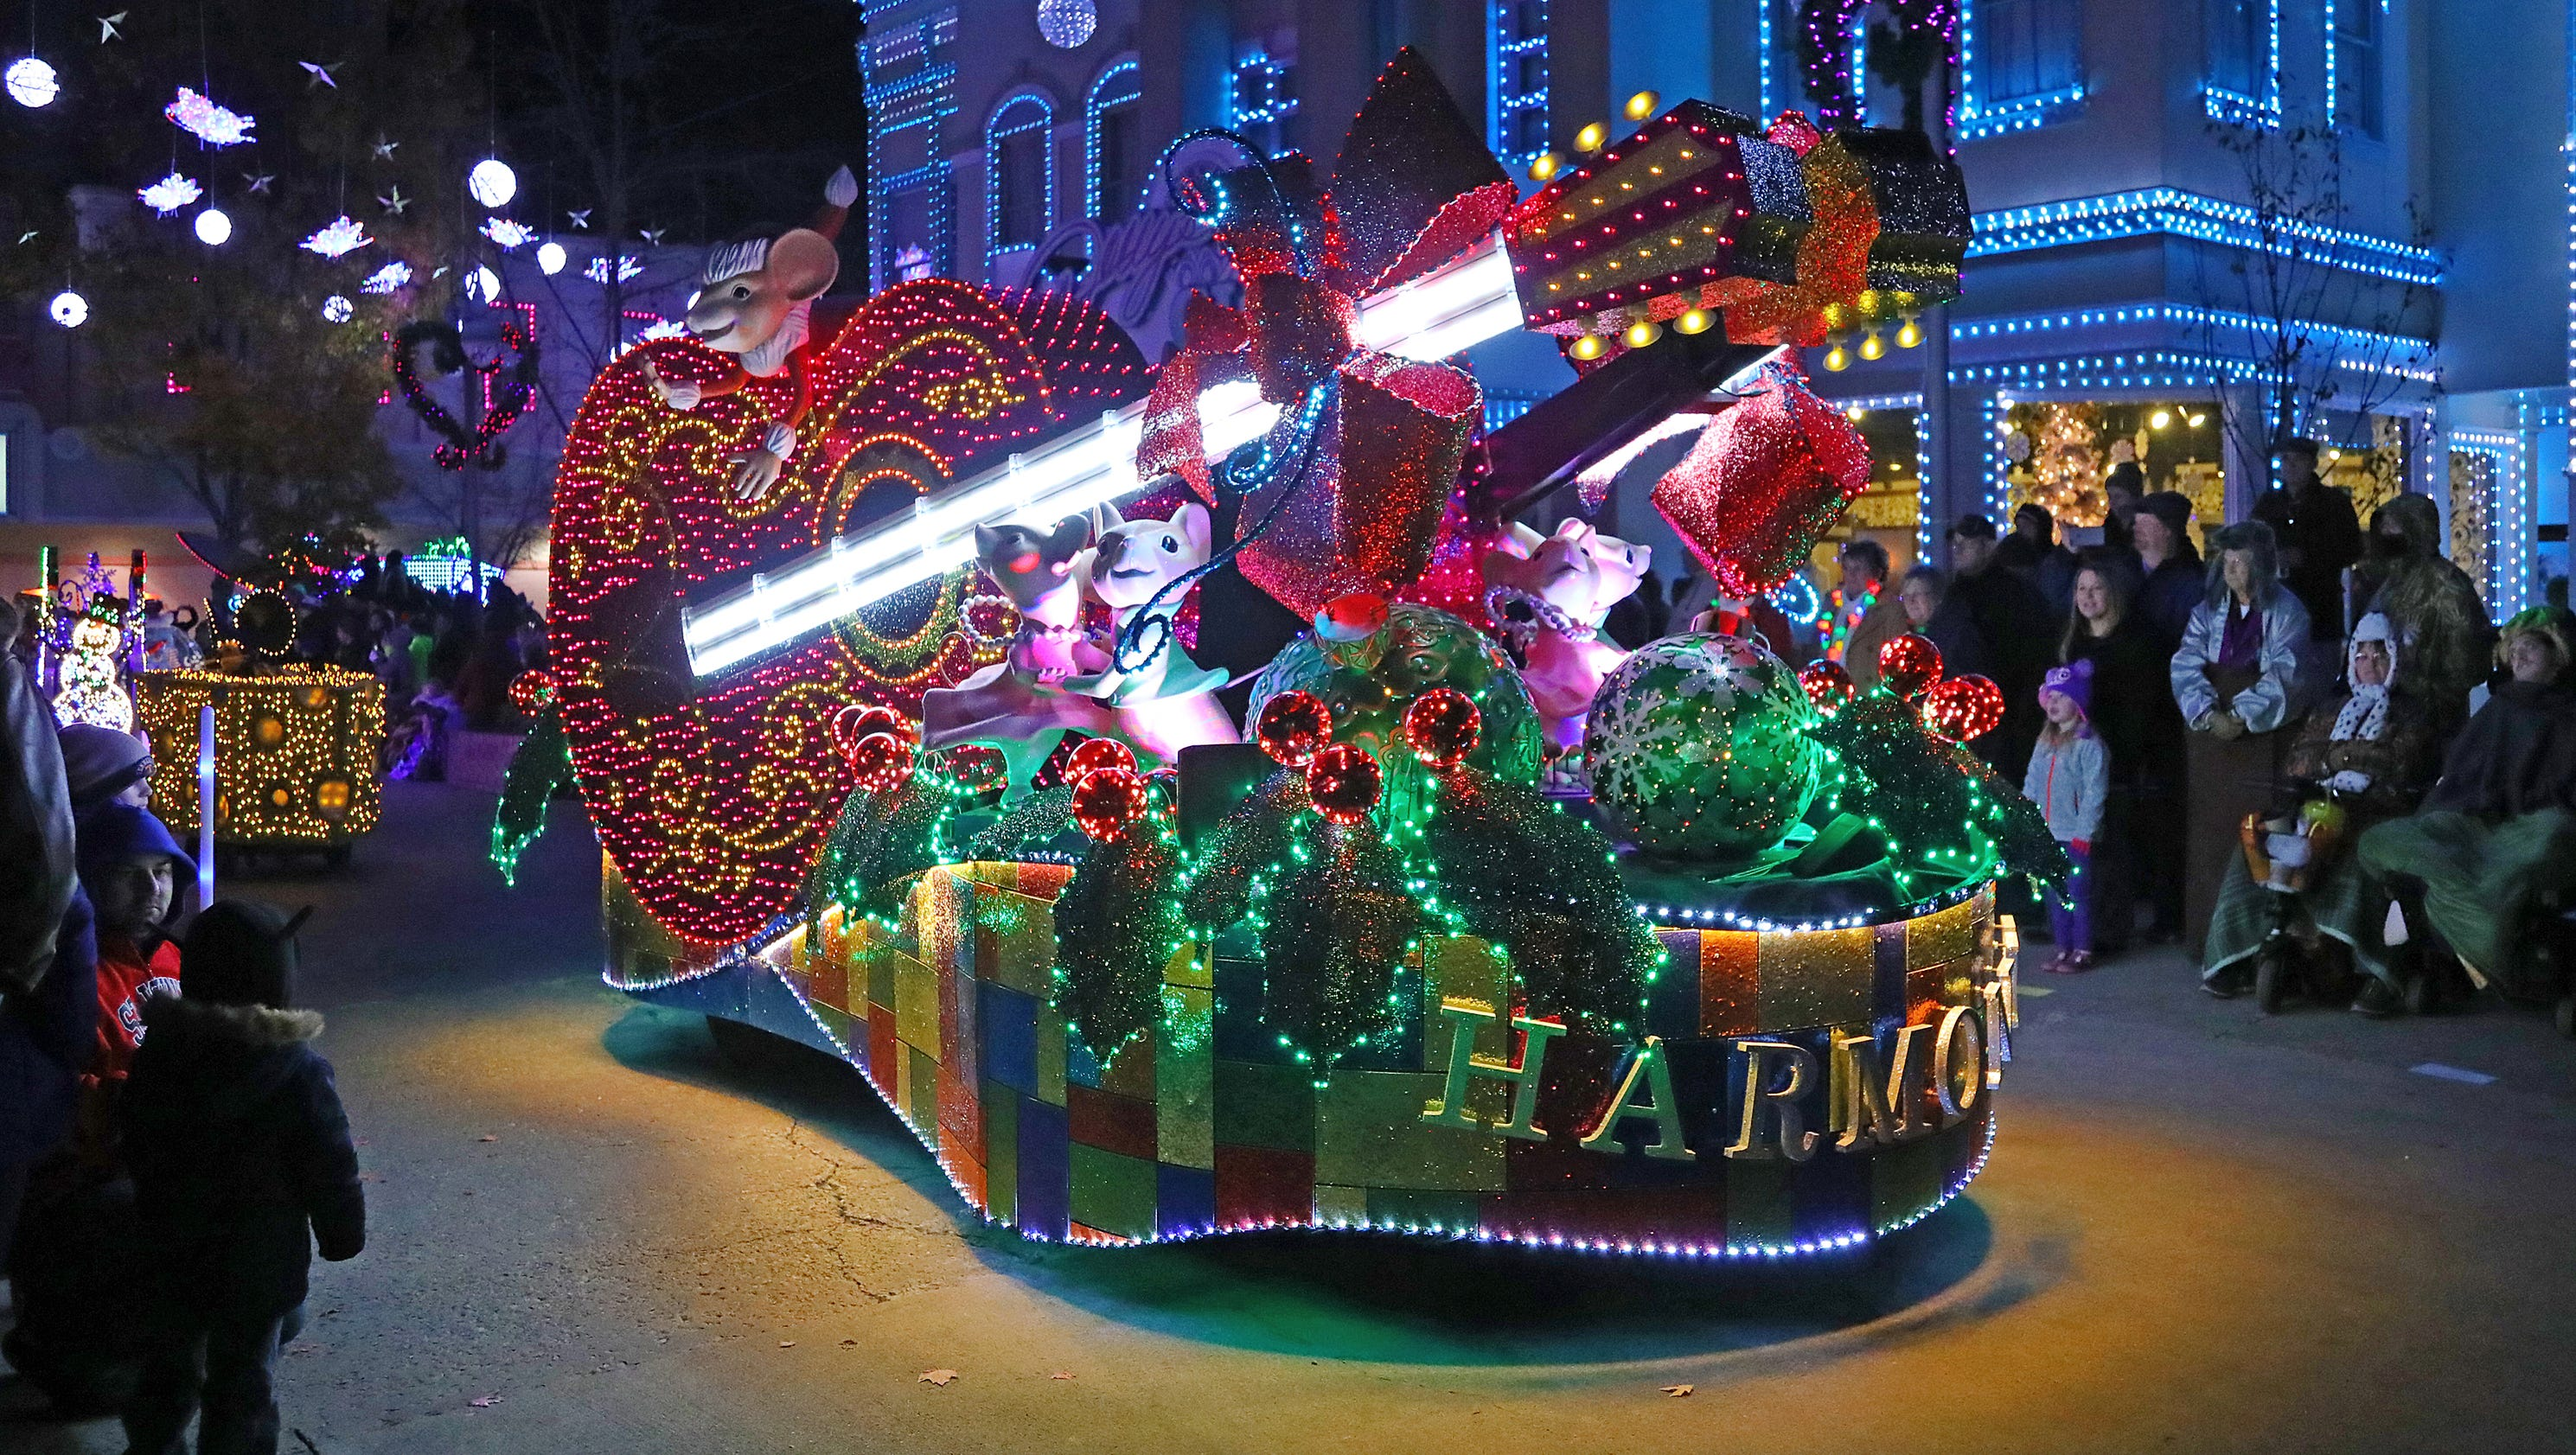 Dollywood goes all-out for a Smoky Mountain Christmas